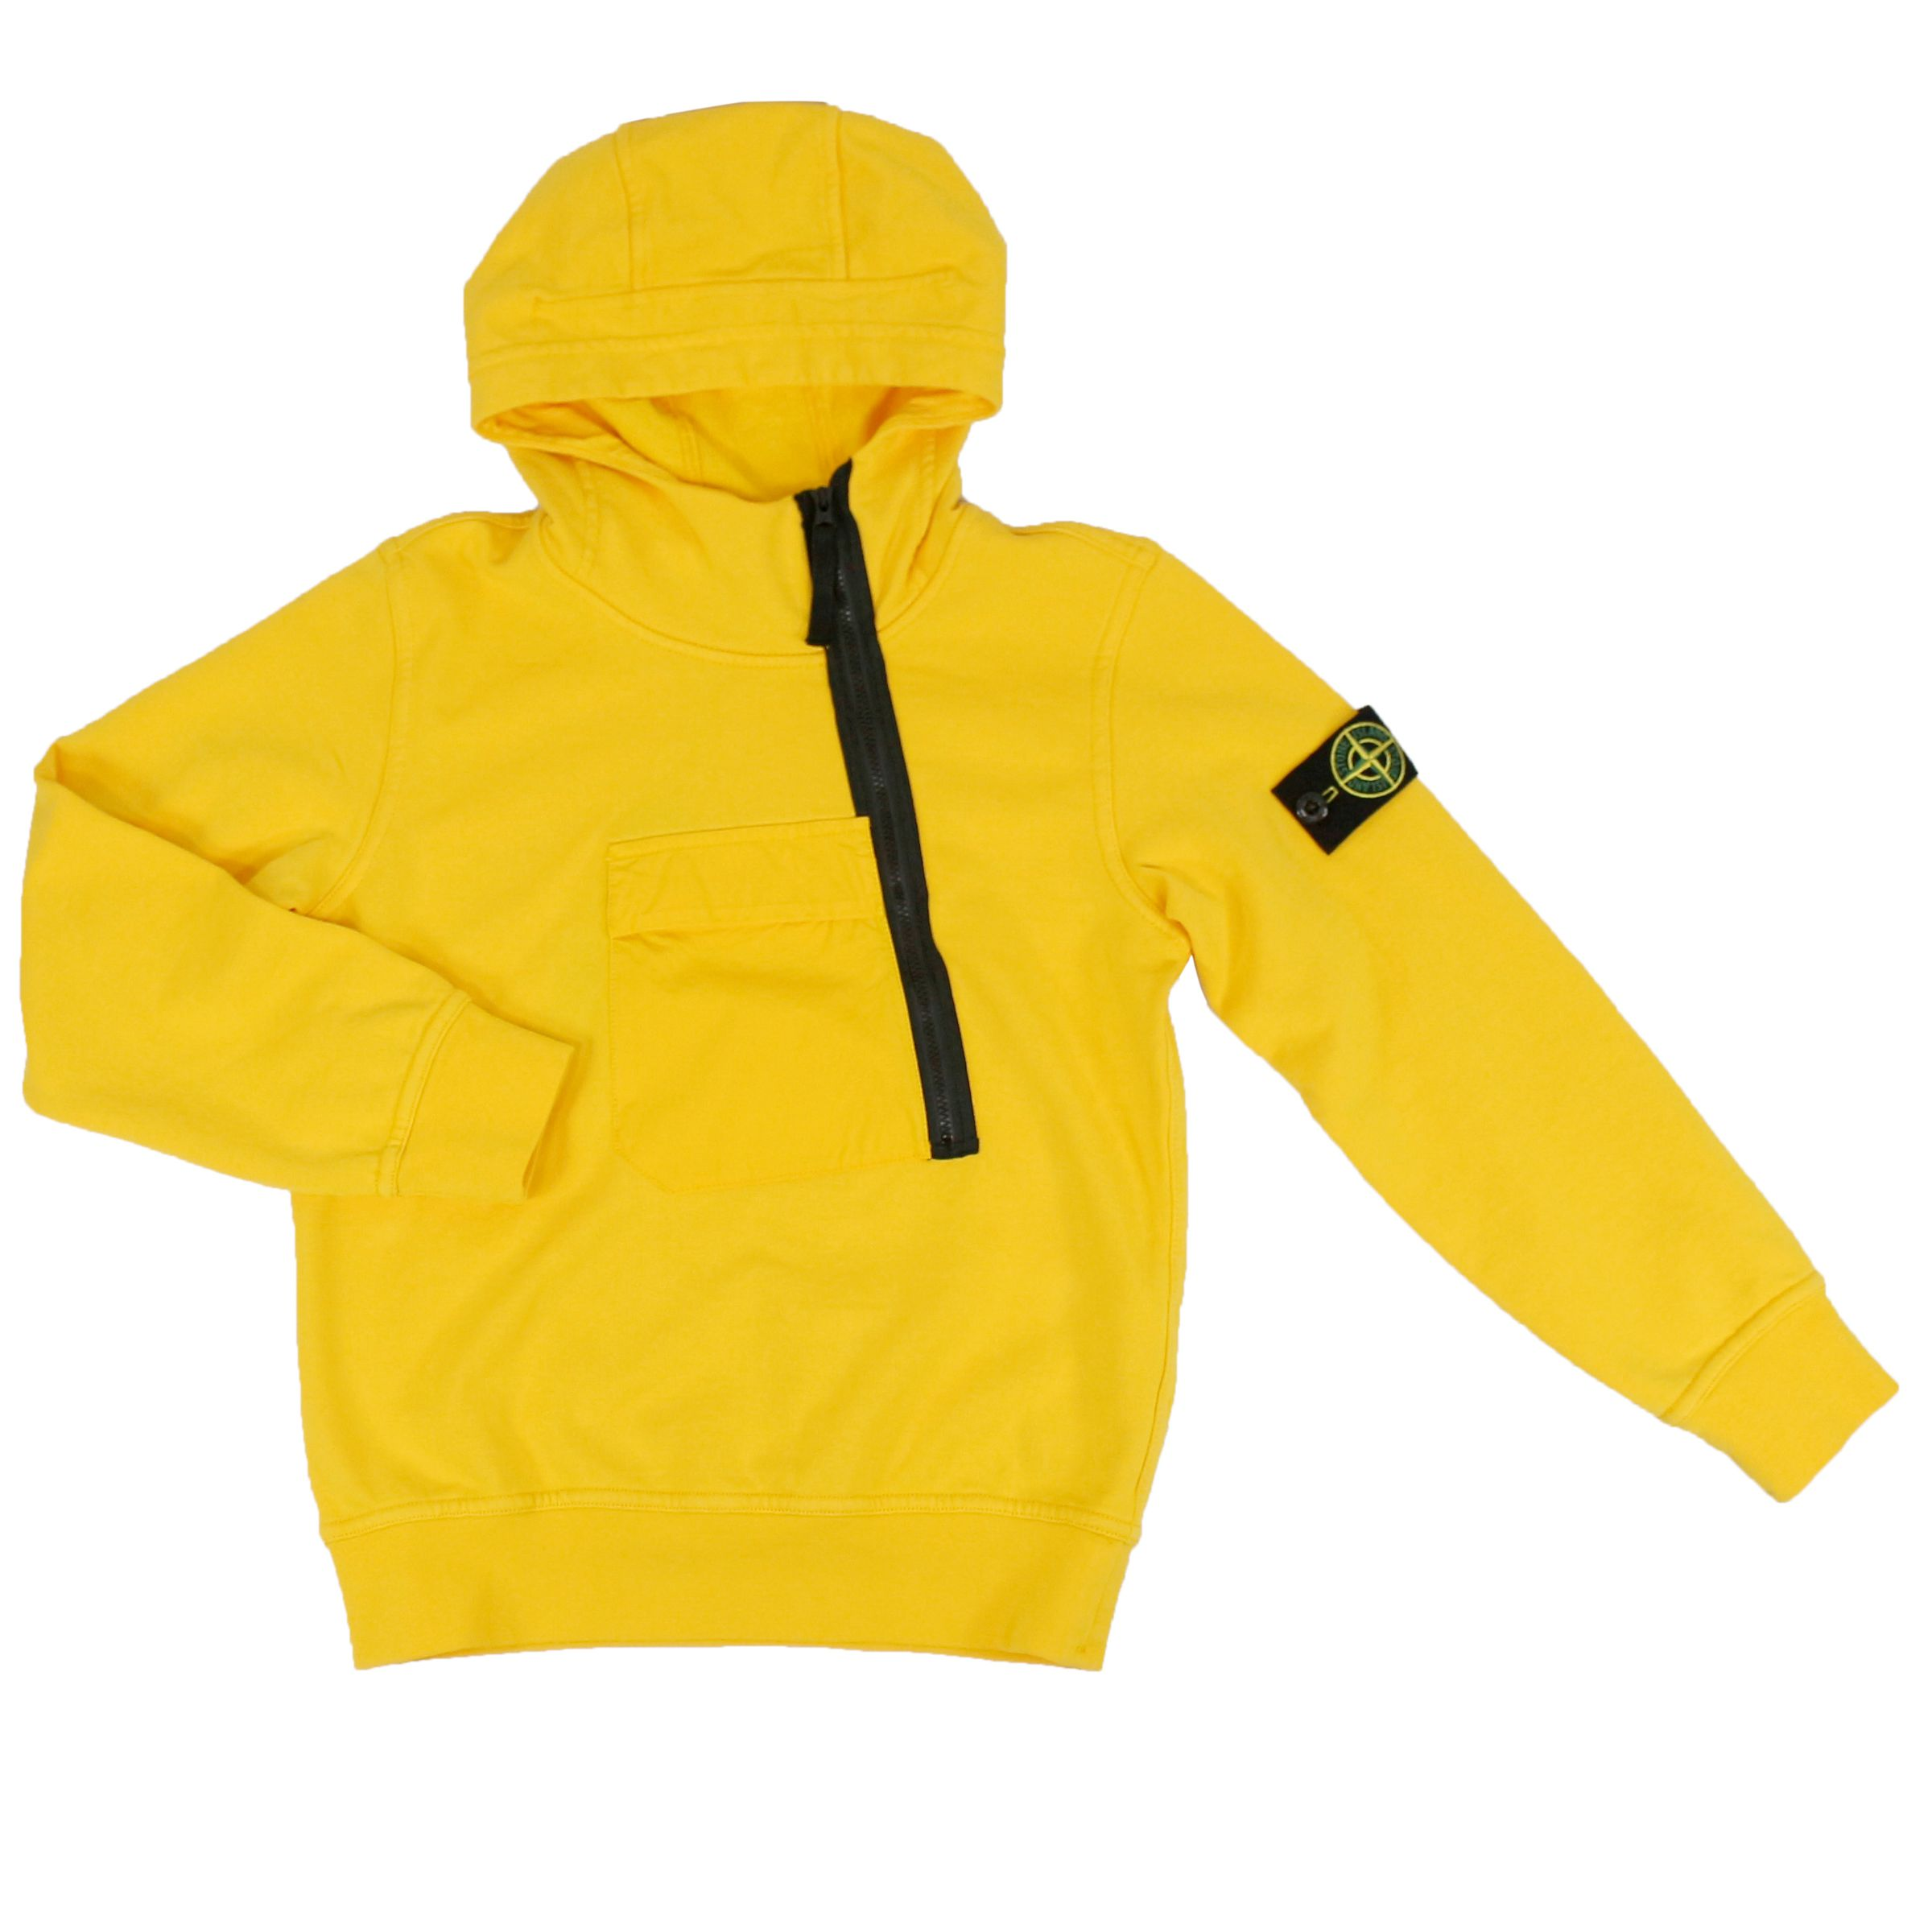 on sale 30fb5 e6208 Hooded sweatshirt with side zip